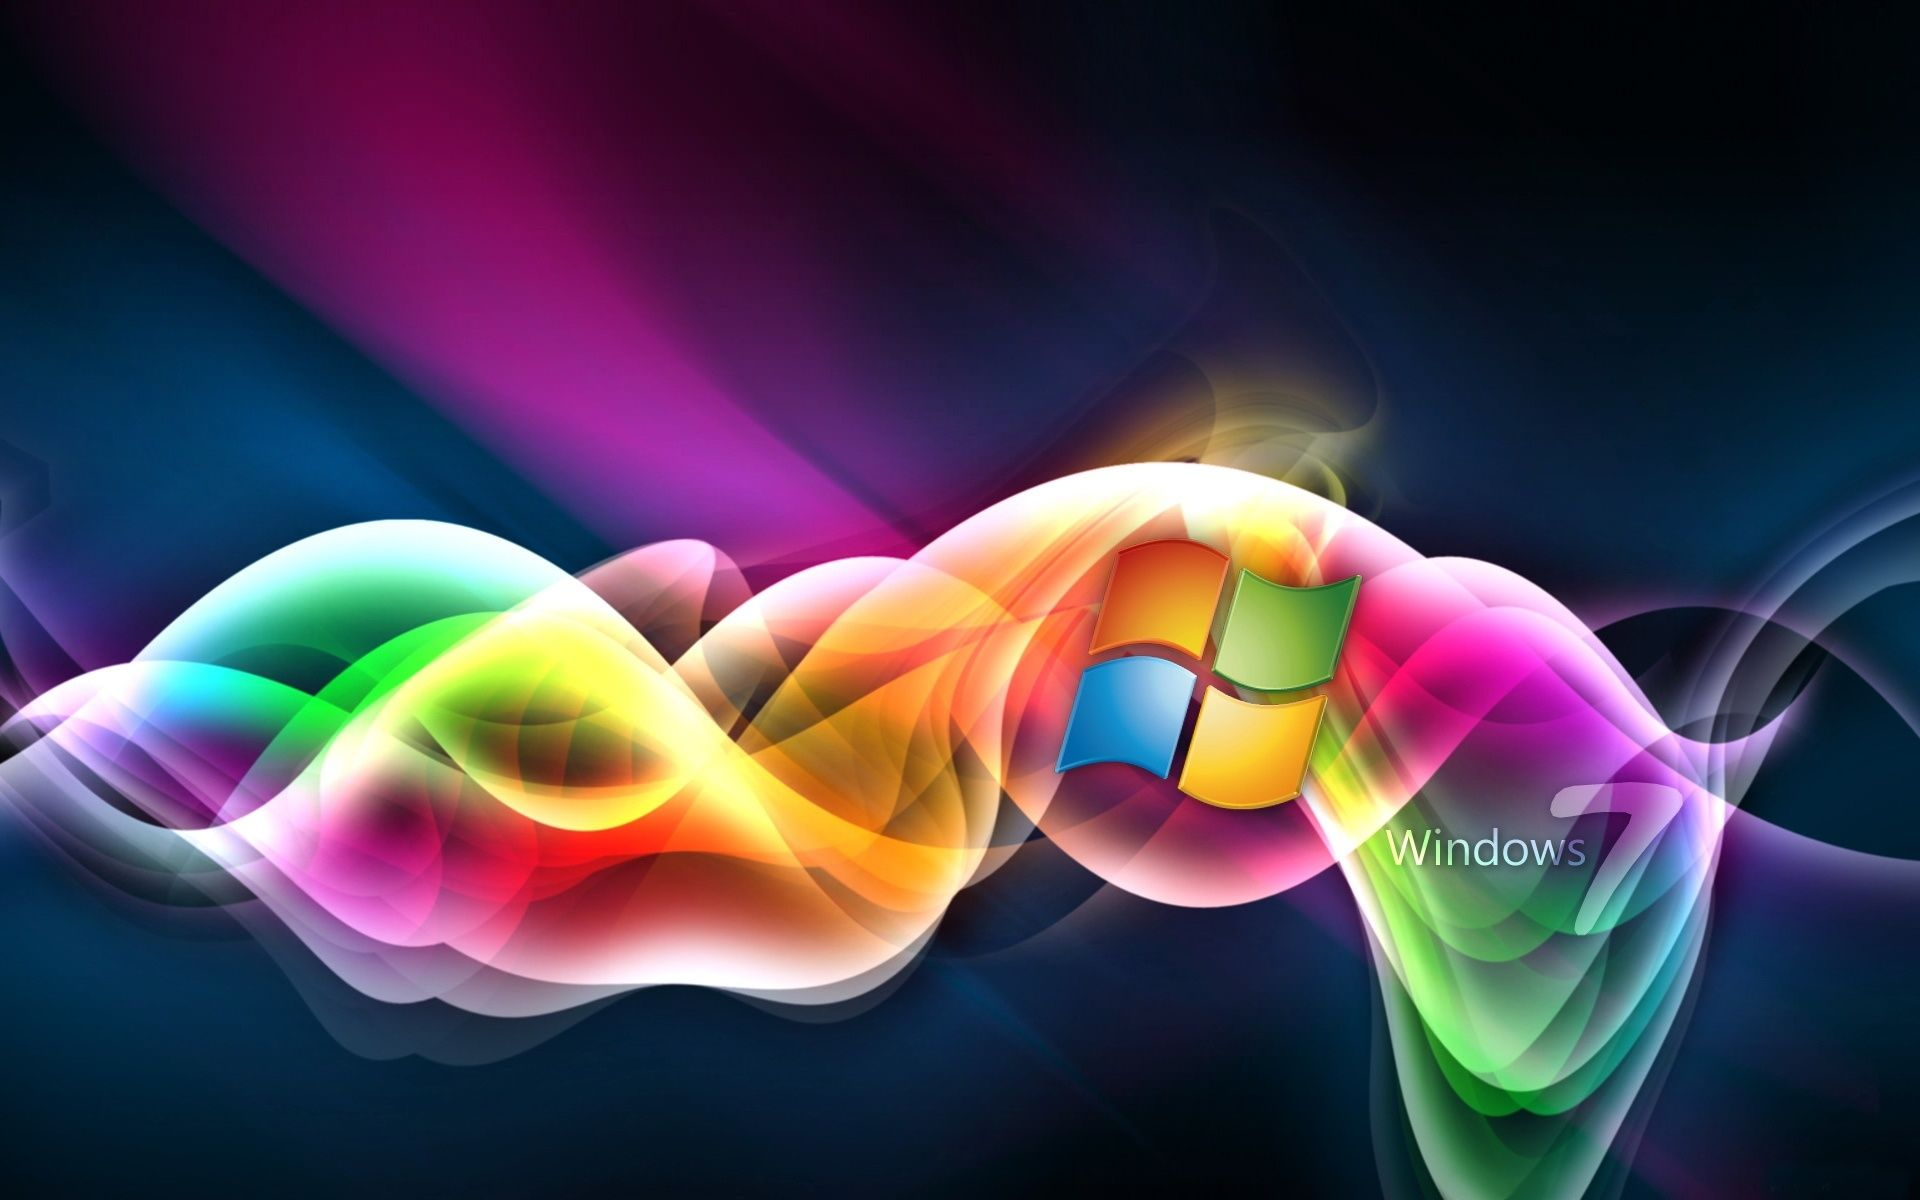 3D Animated Wallpaper for Windows 7 hdwallpapers